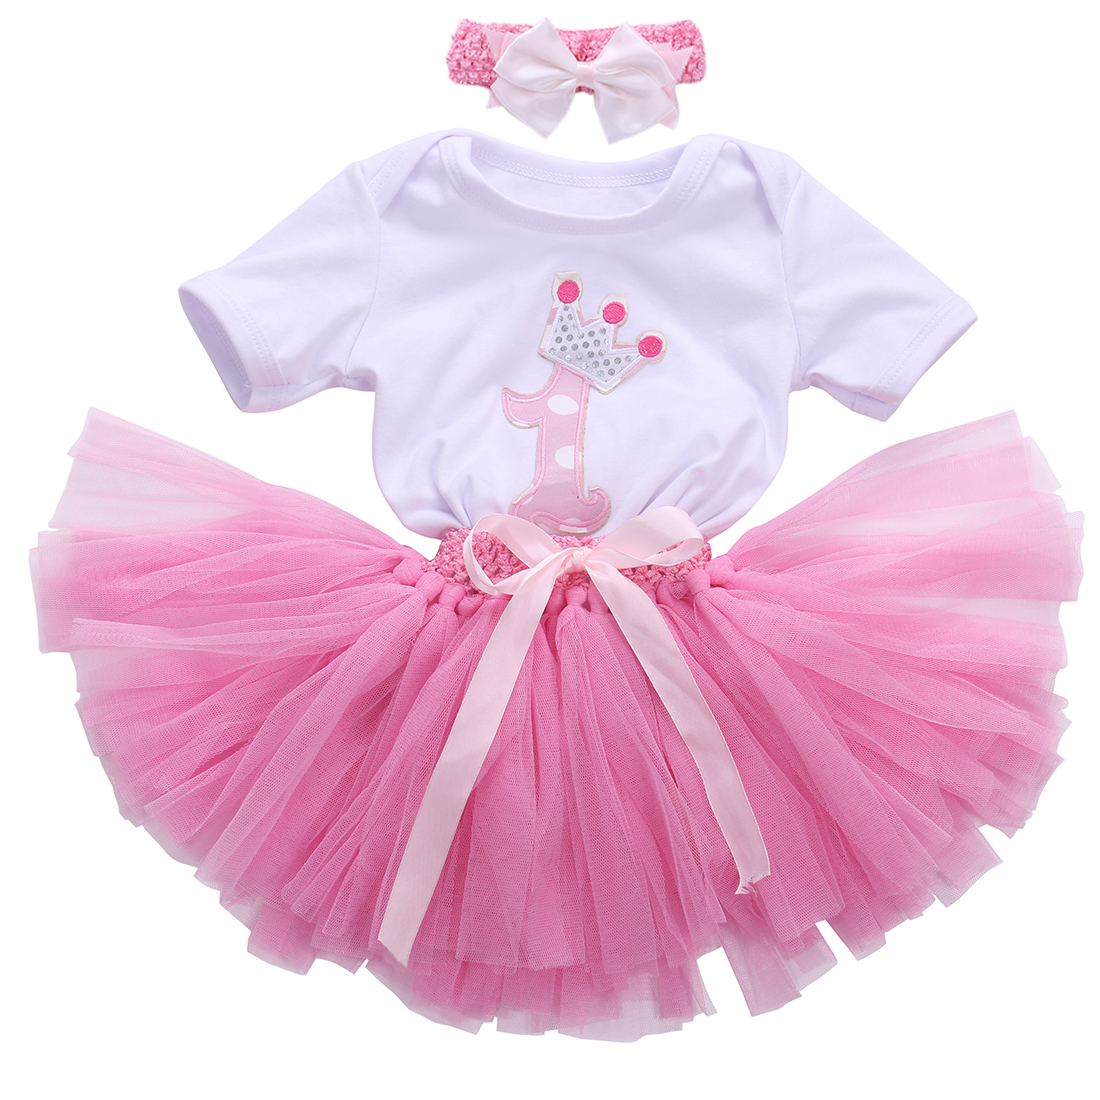 3Pcs Set Baby Girl Crown Tutu Dress Infant 1st Birthday Party Outfit Romper Bubble Skirt Headband Bebe Newborns Tulle Vestidos baby girl infant 3pcs clothing sets tutu romper dress jumpersuit one or two yrs old bebe party birthday suit costumes vestidos